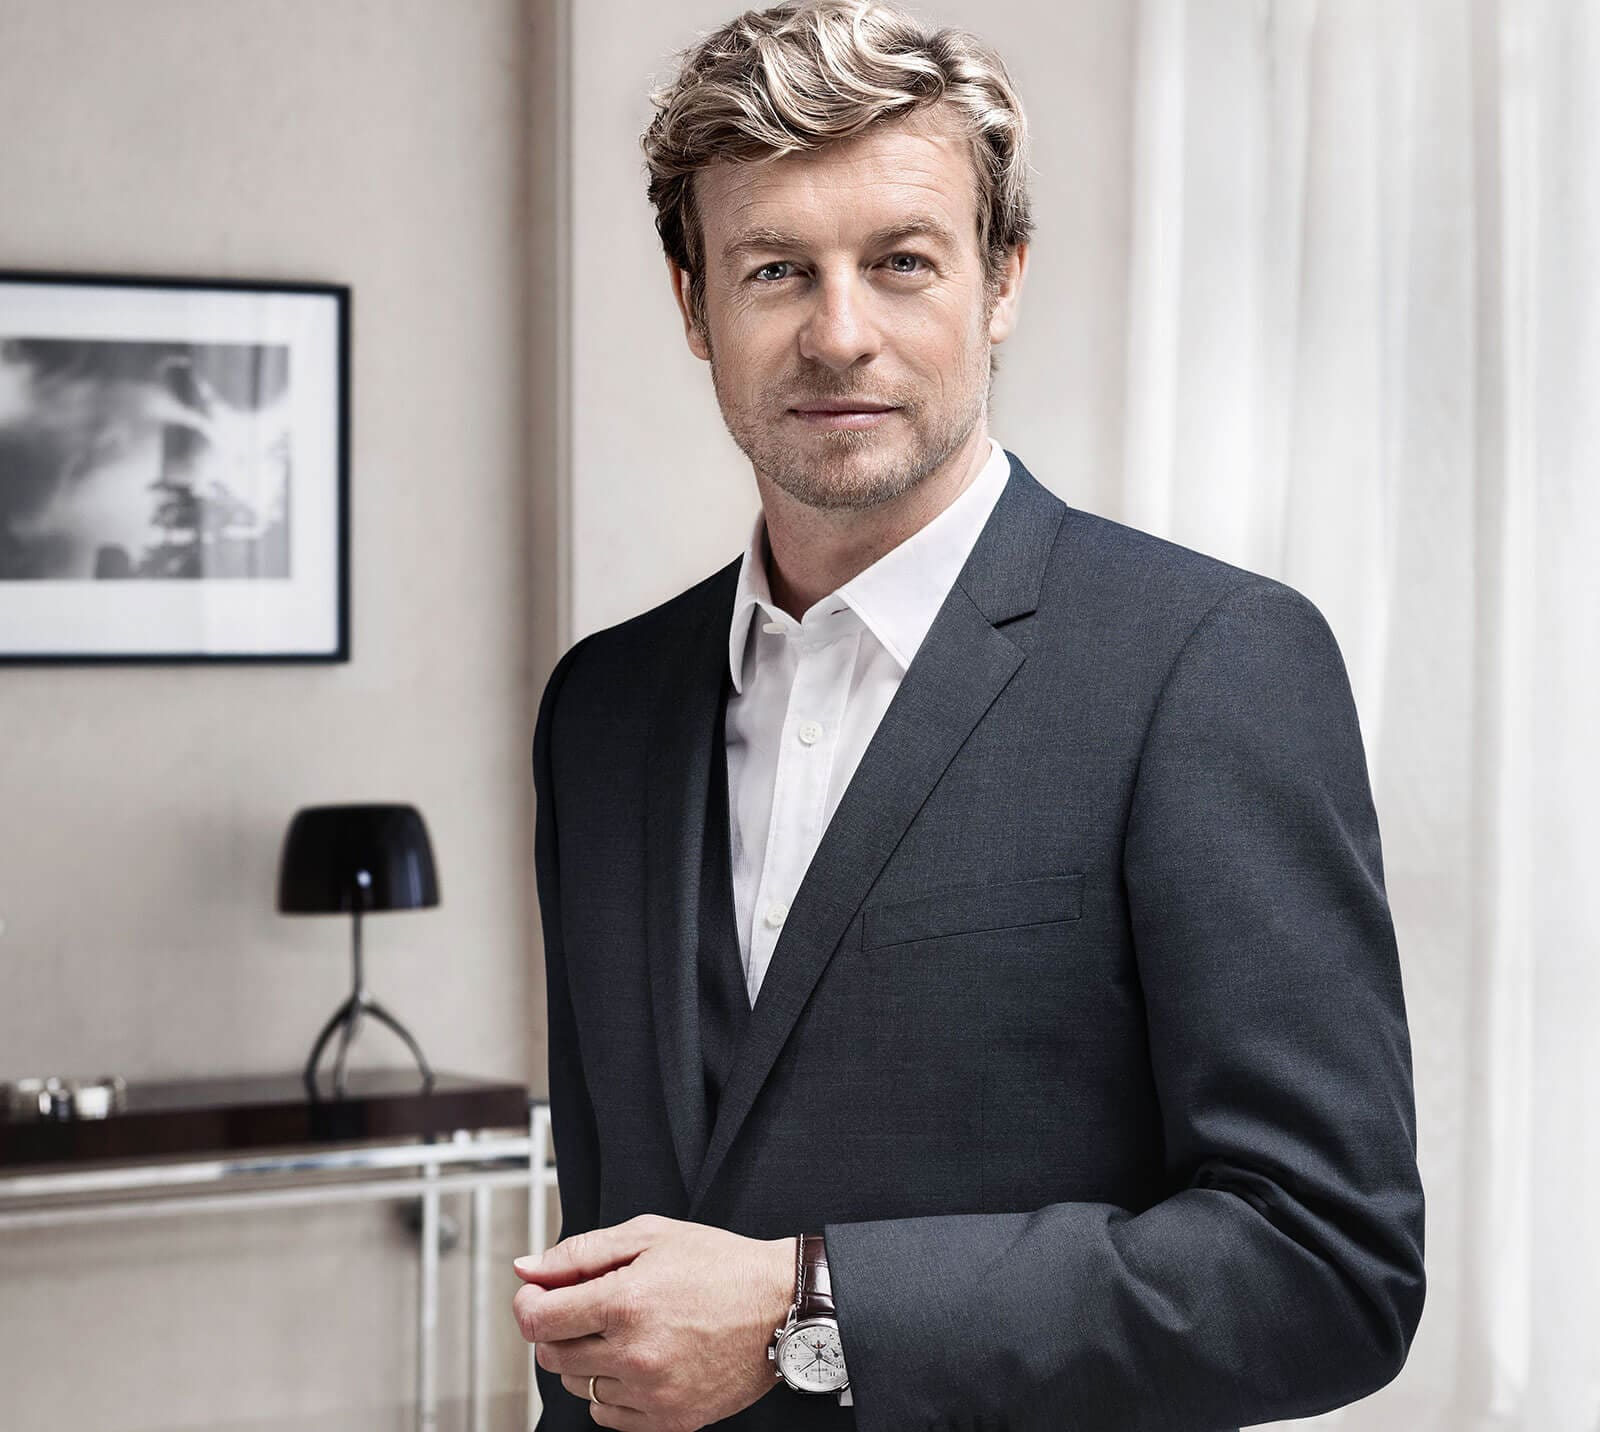 simon baker facebooksimon baker 2016, simon baker wife, simon baker 2017, simon baker gif, simon baker young, simon baker breath, simon baker twitter, simon baker family, simon baker givenchy, simon baker vk, simon baker facebook, simon baker daughter, simon baker gif tumblr, simon baker height, simon baker film, simon baker wiki, simon baker gentlemen only, simon baker givenchy gentlemen only, simon baker nicholas bishop, simon baker suit